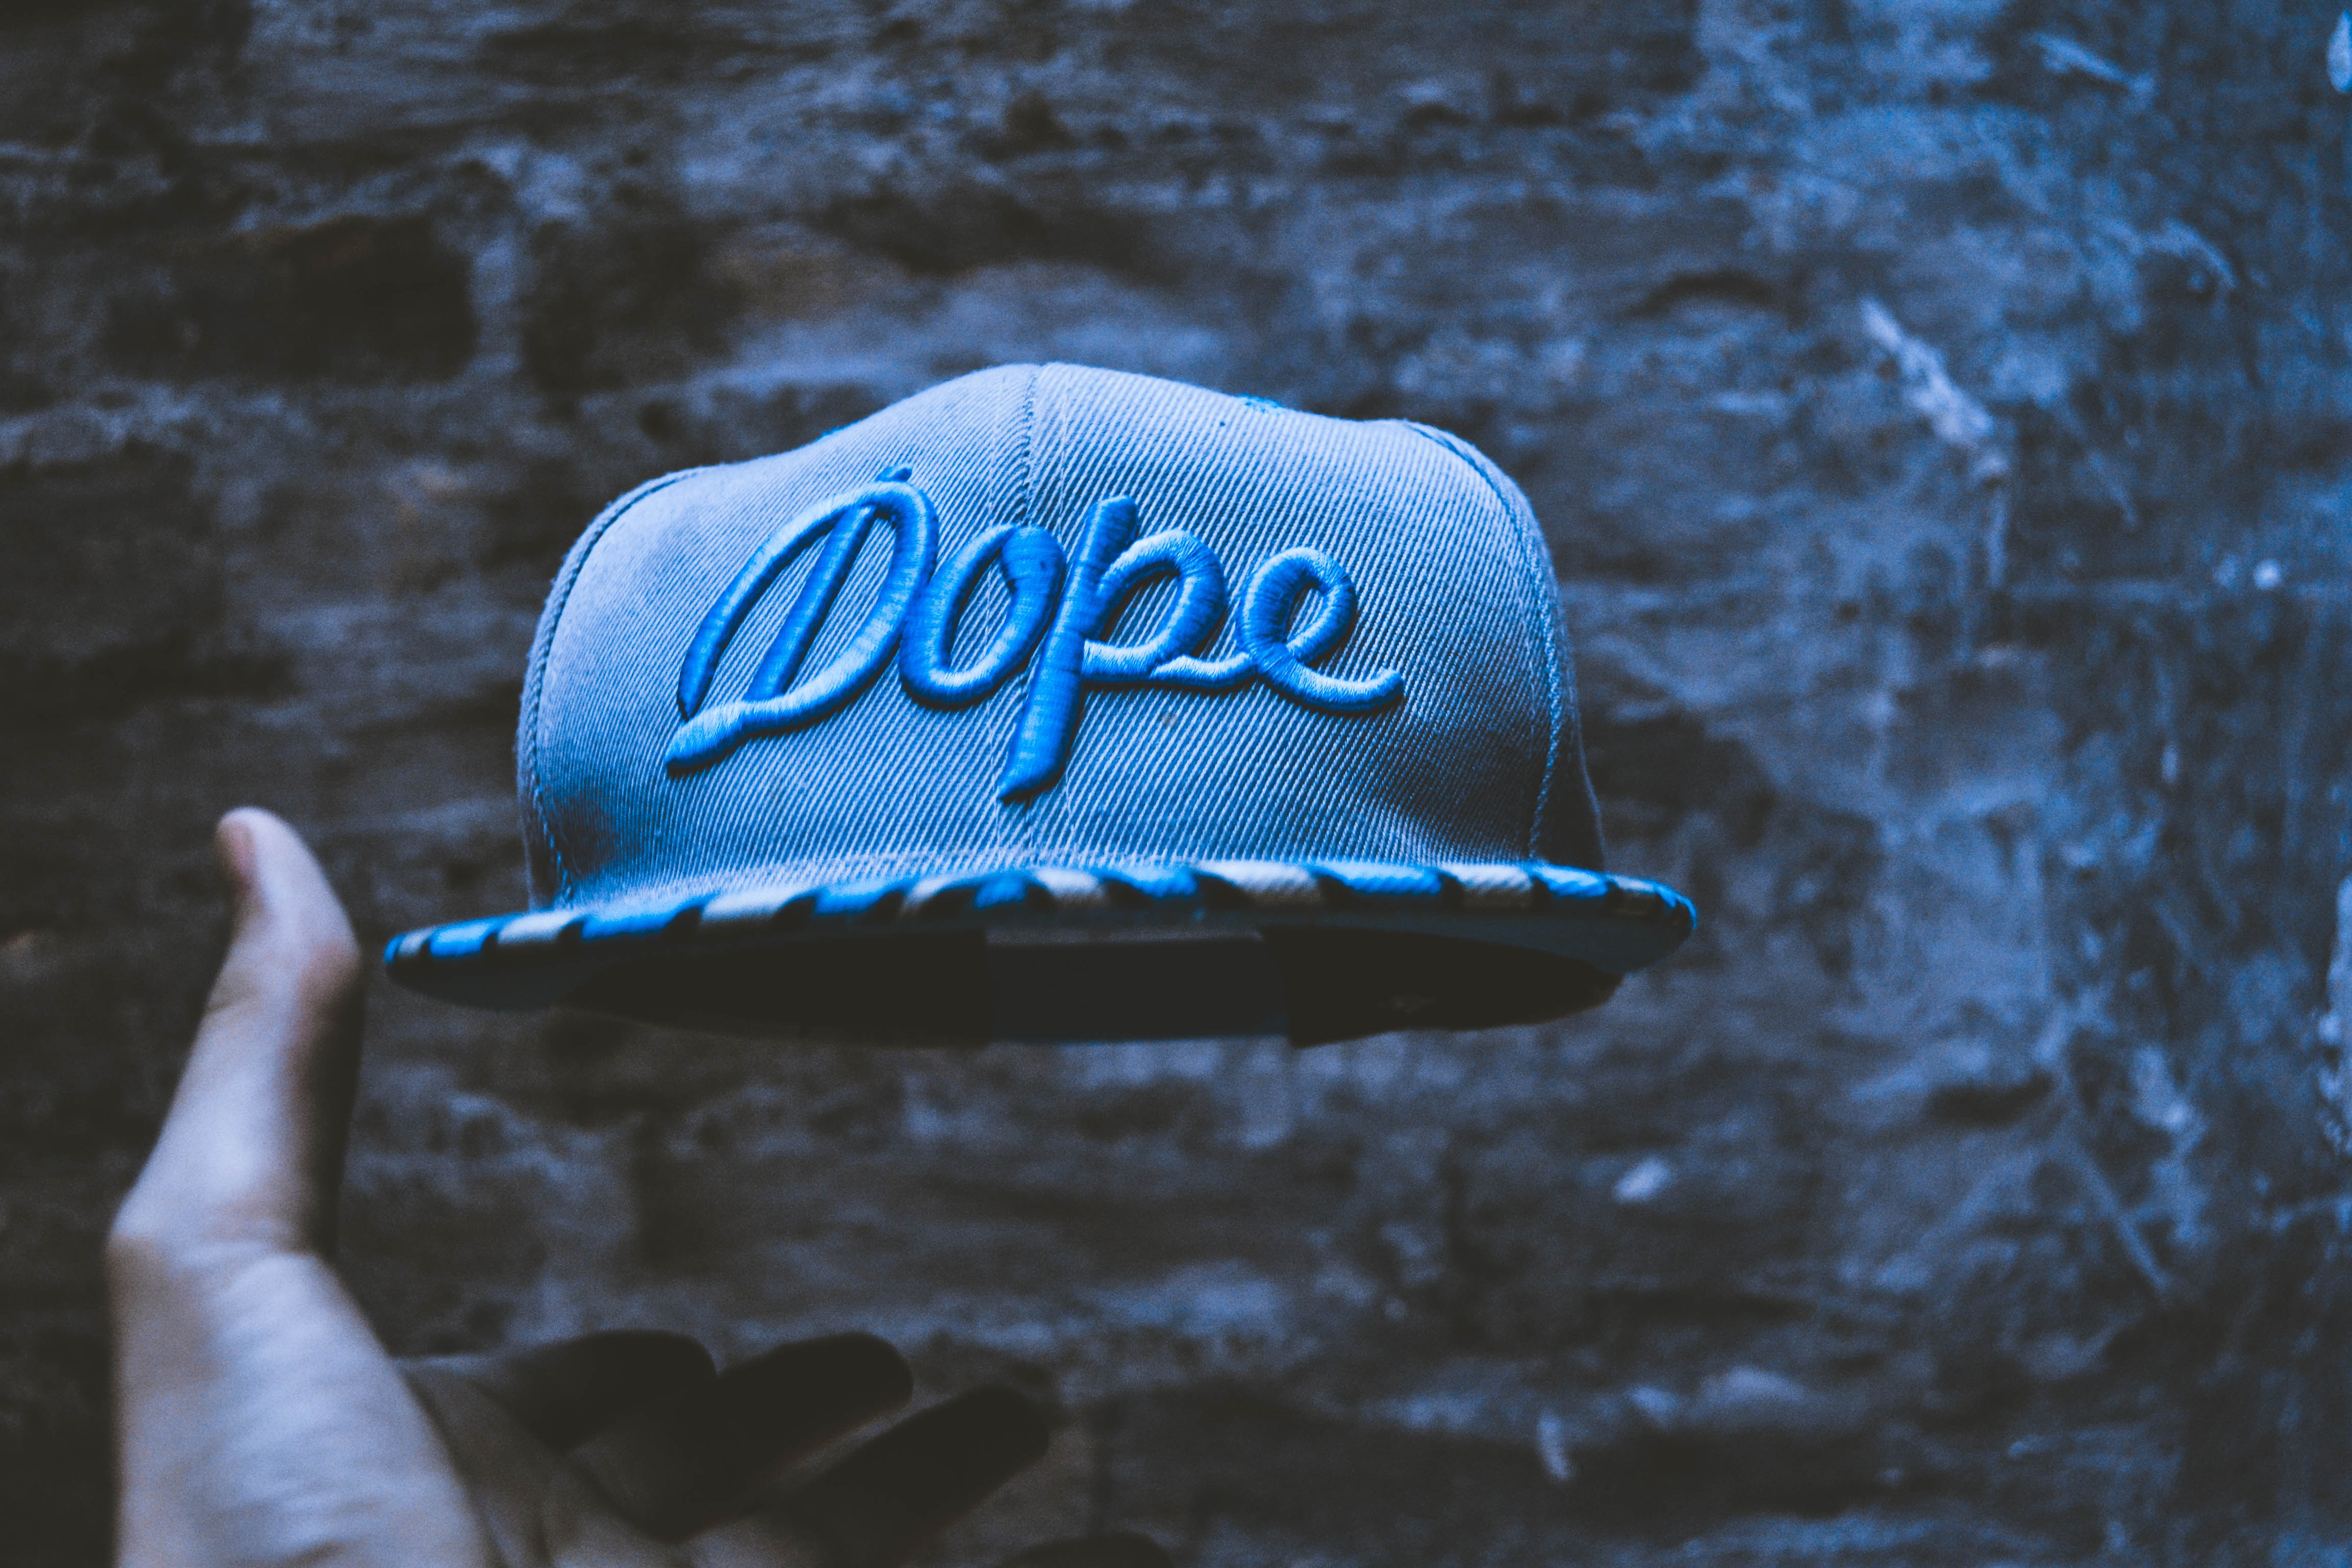 check here faq for ordering embroidered baseball caps online